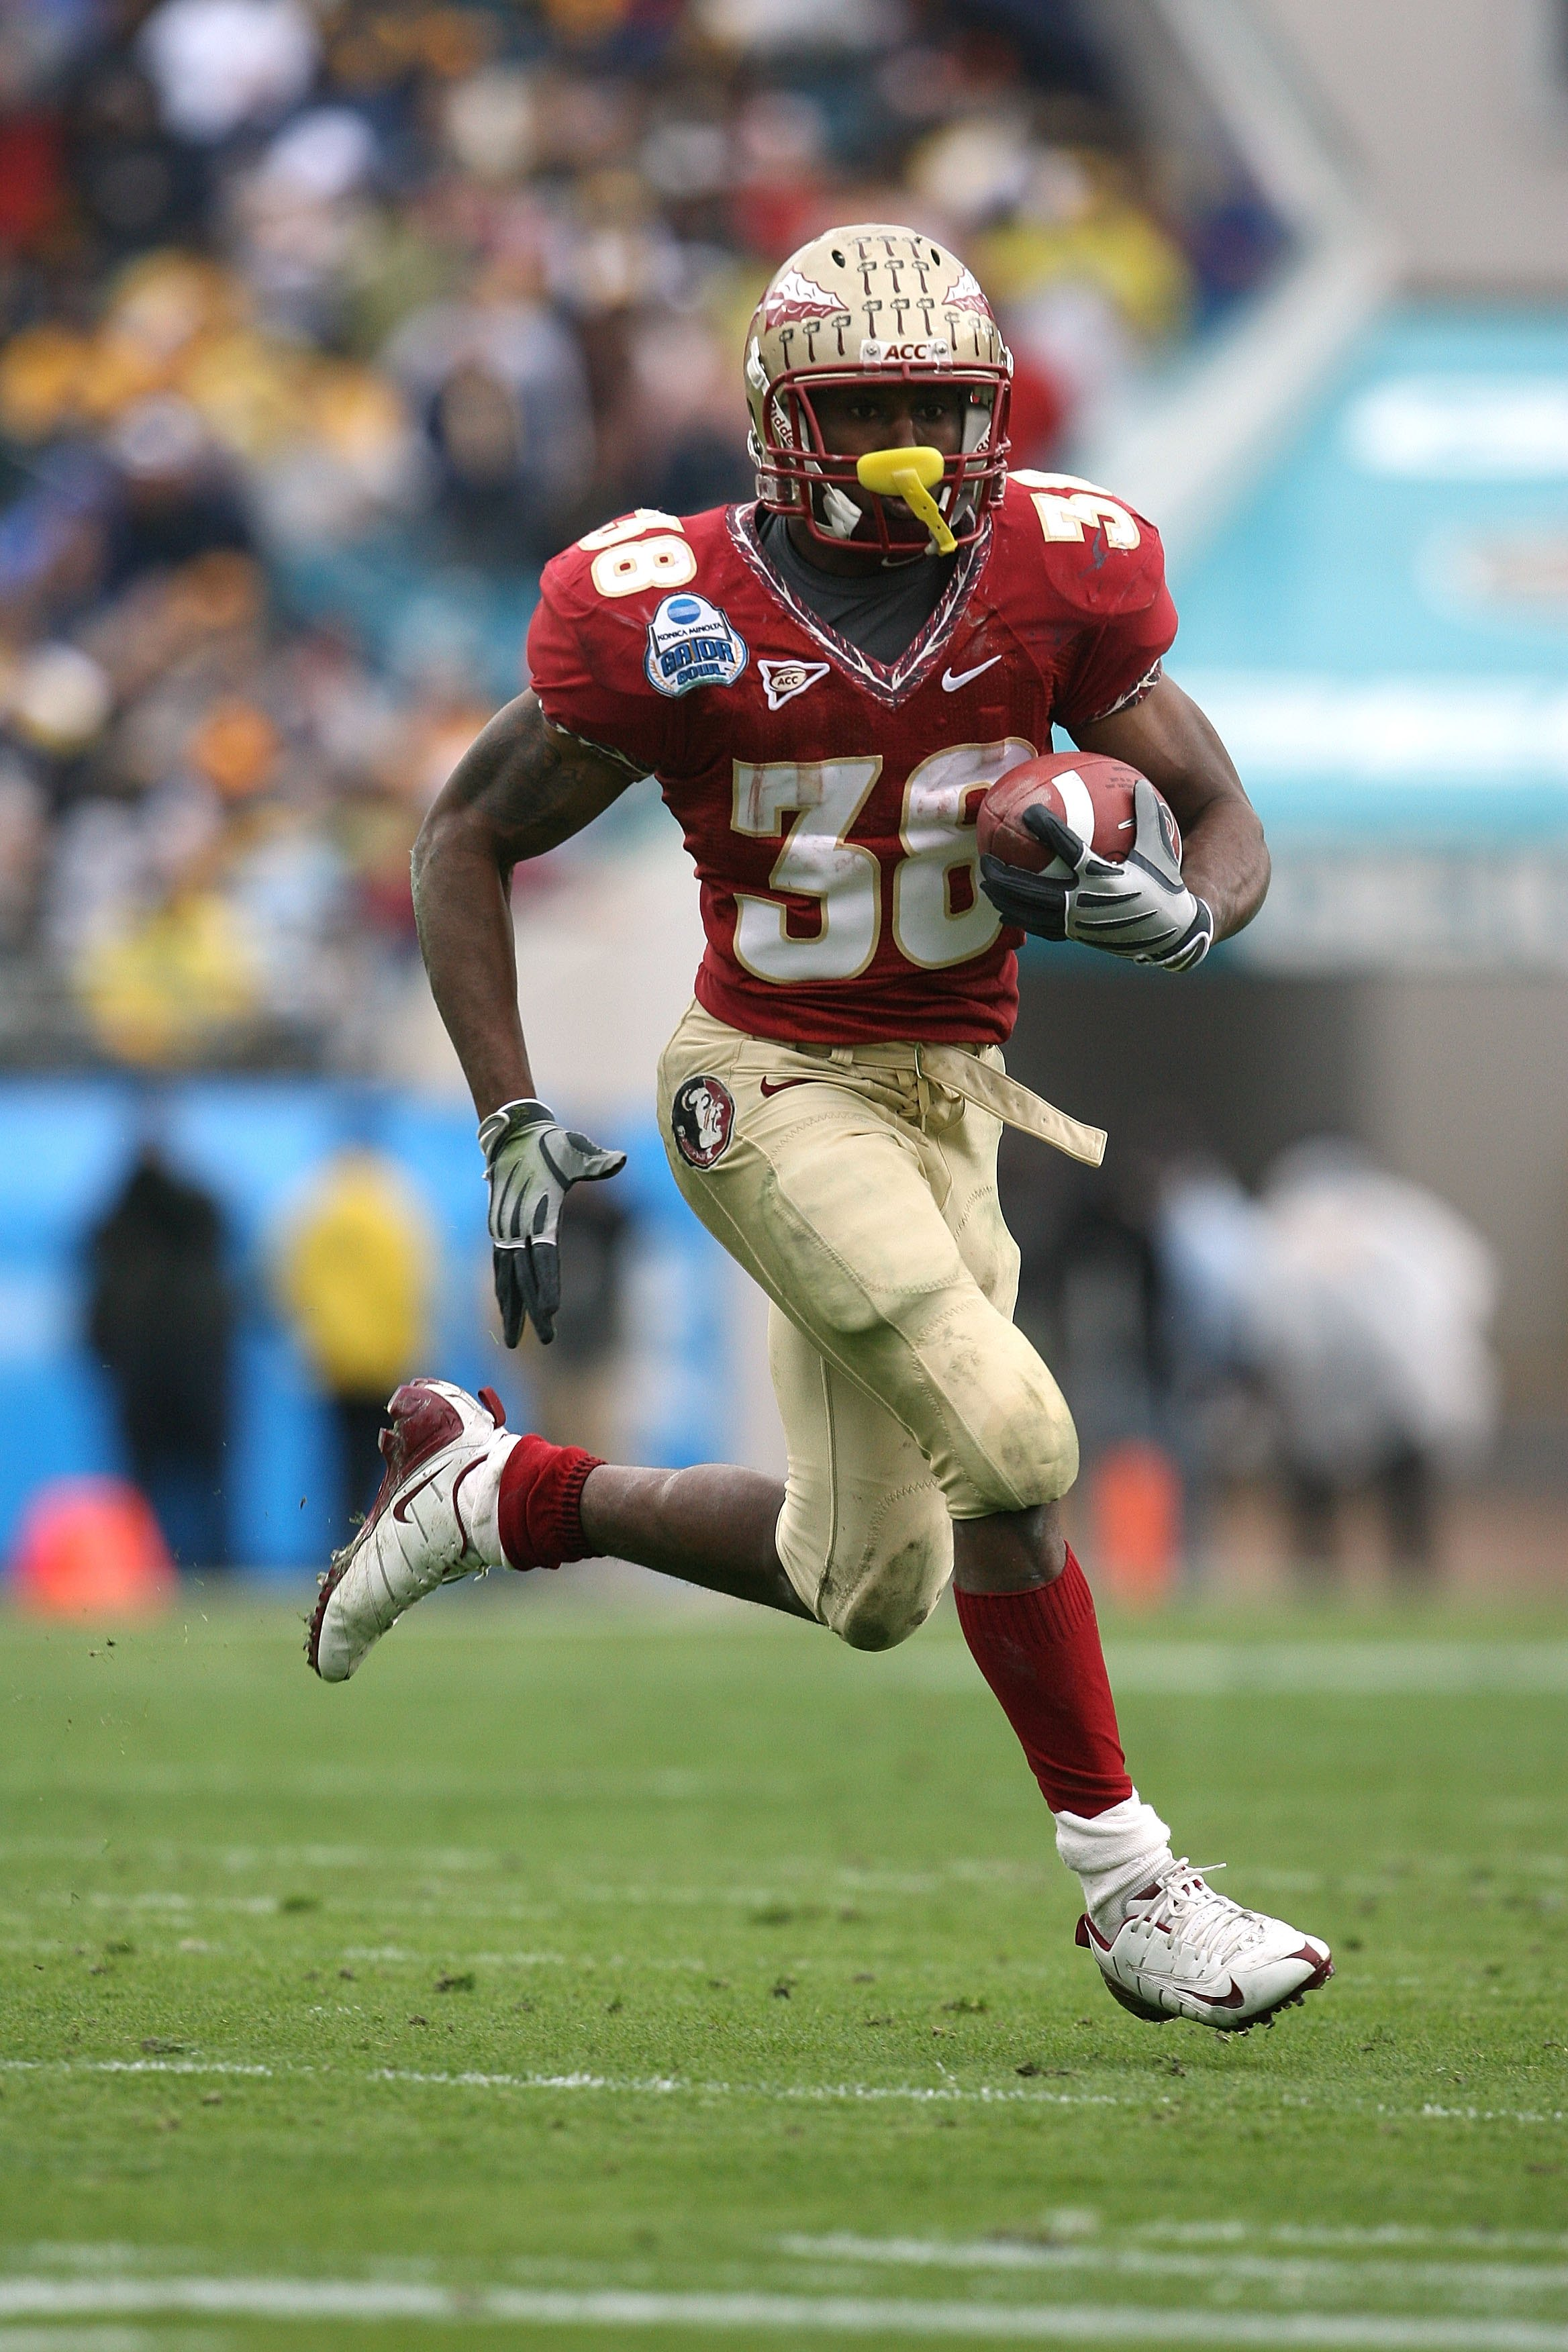 Jermaine Thomas needs to have a big game against the Cougars